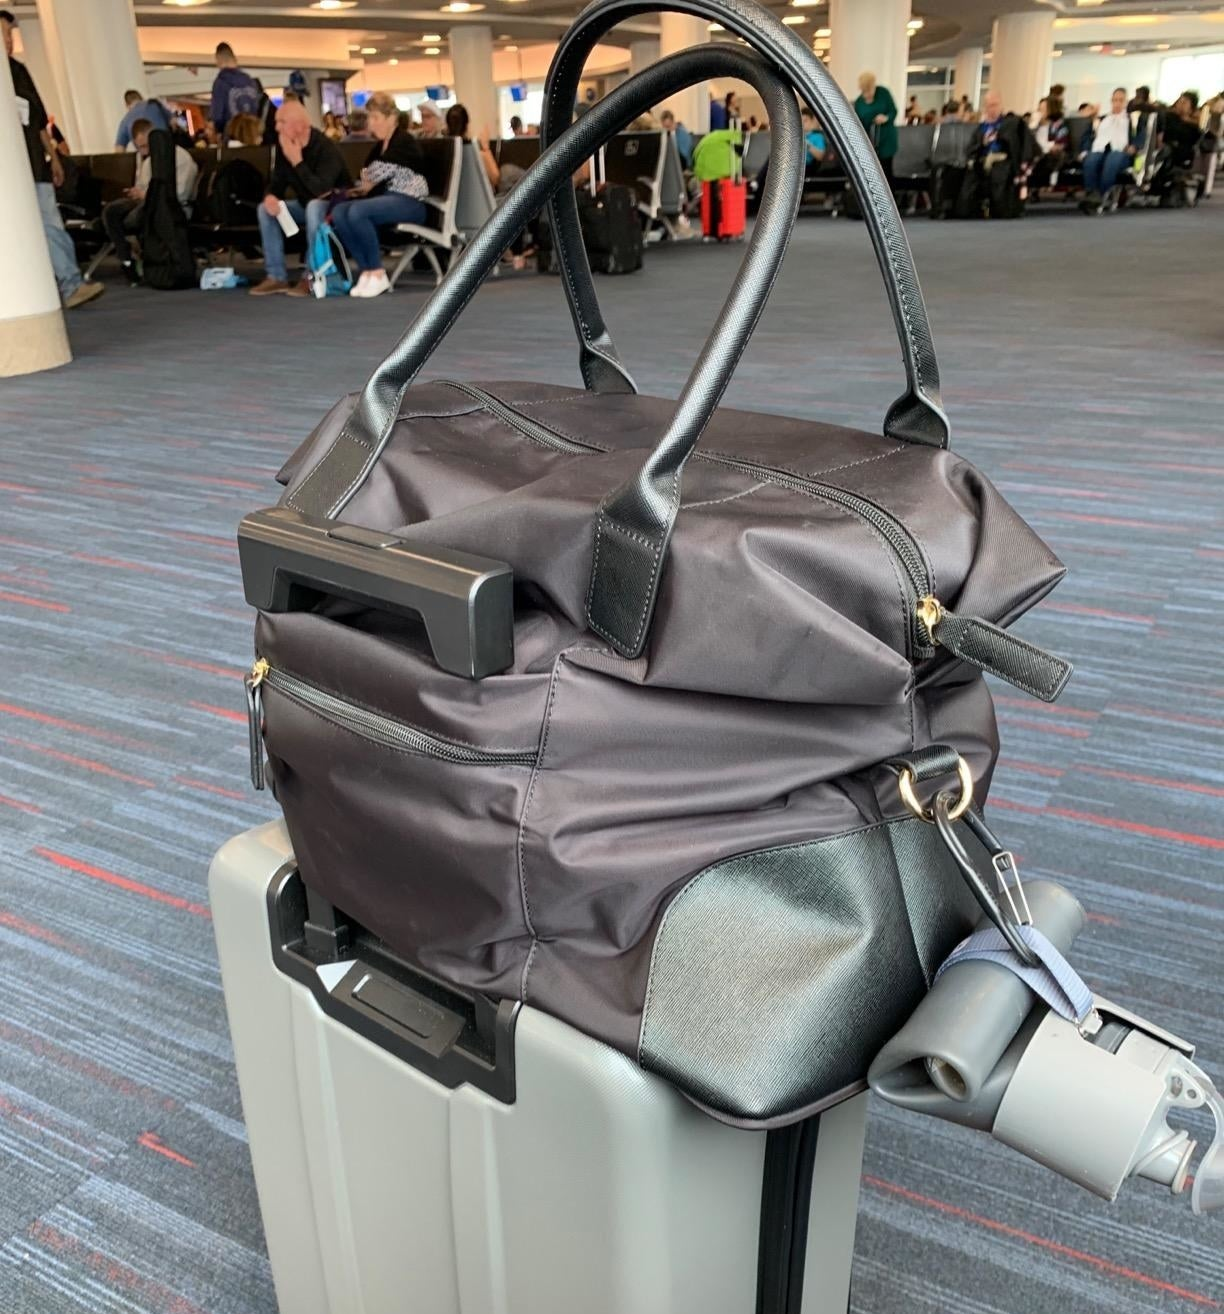 A reviewer photo of the black tote filled with things, sitting on top of a luggage